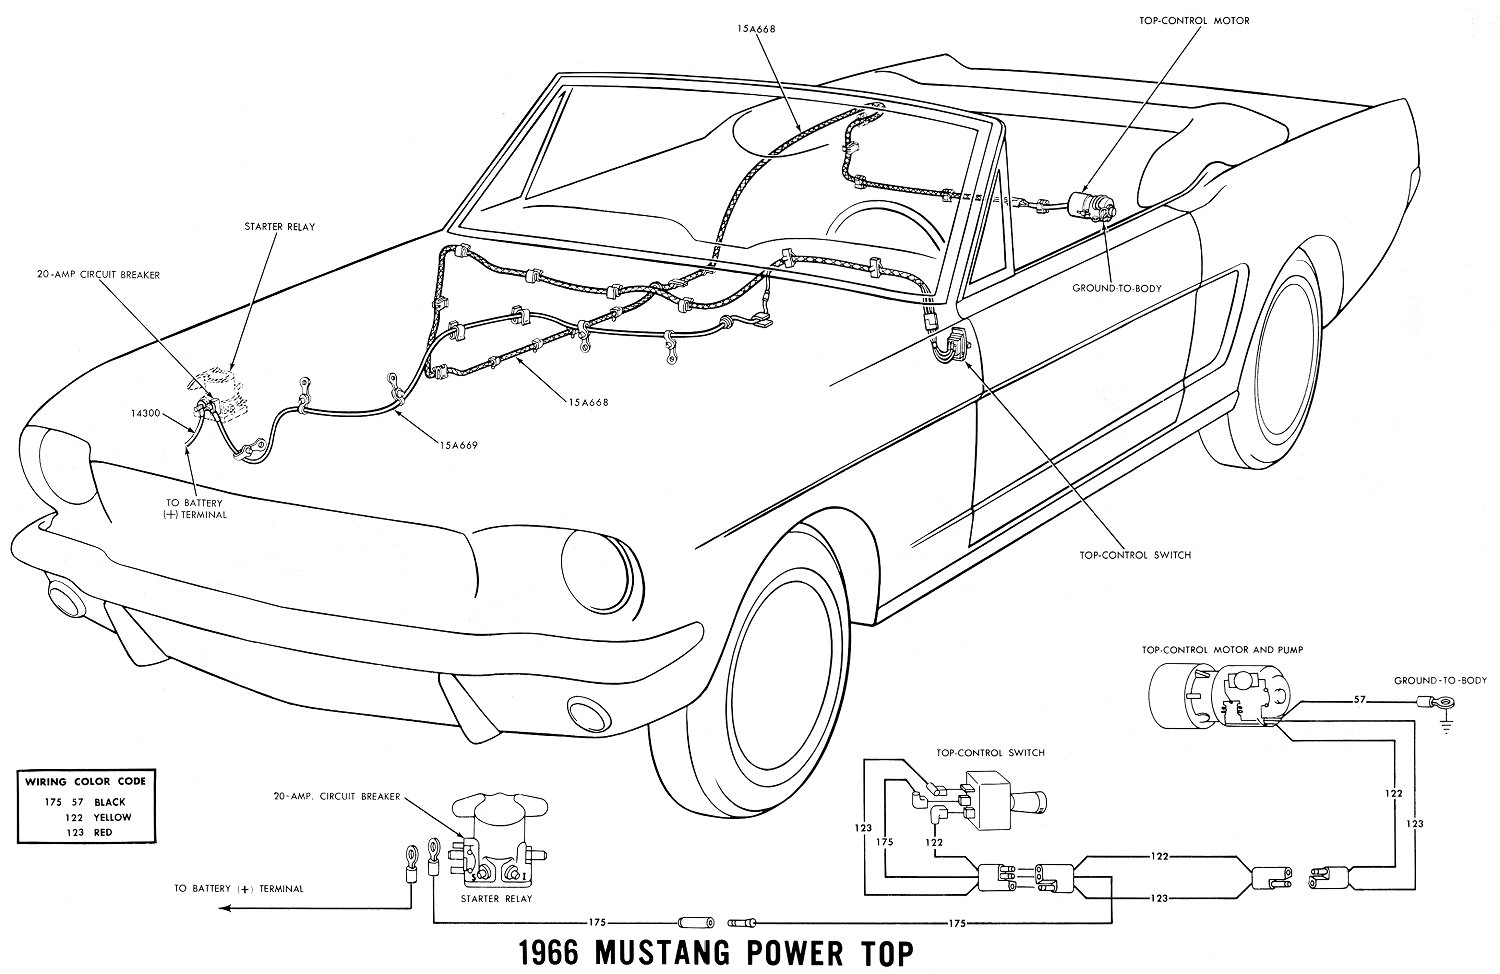 66pwrtop 1966 mustang wiring diagrams average joe restoration 66 mustang alternator wiring diagram at couponss.co